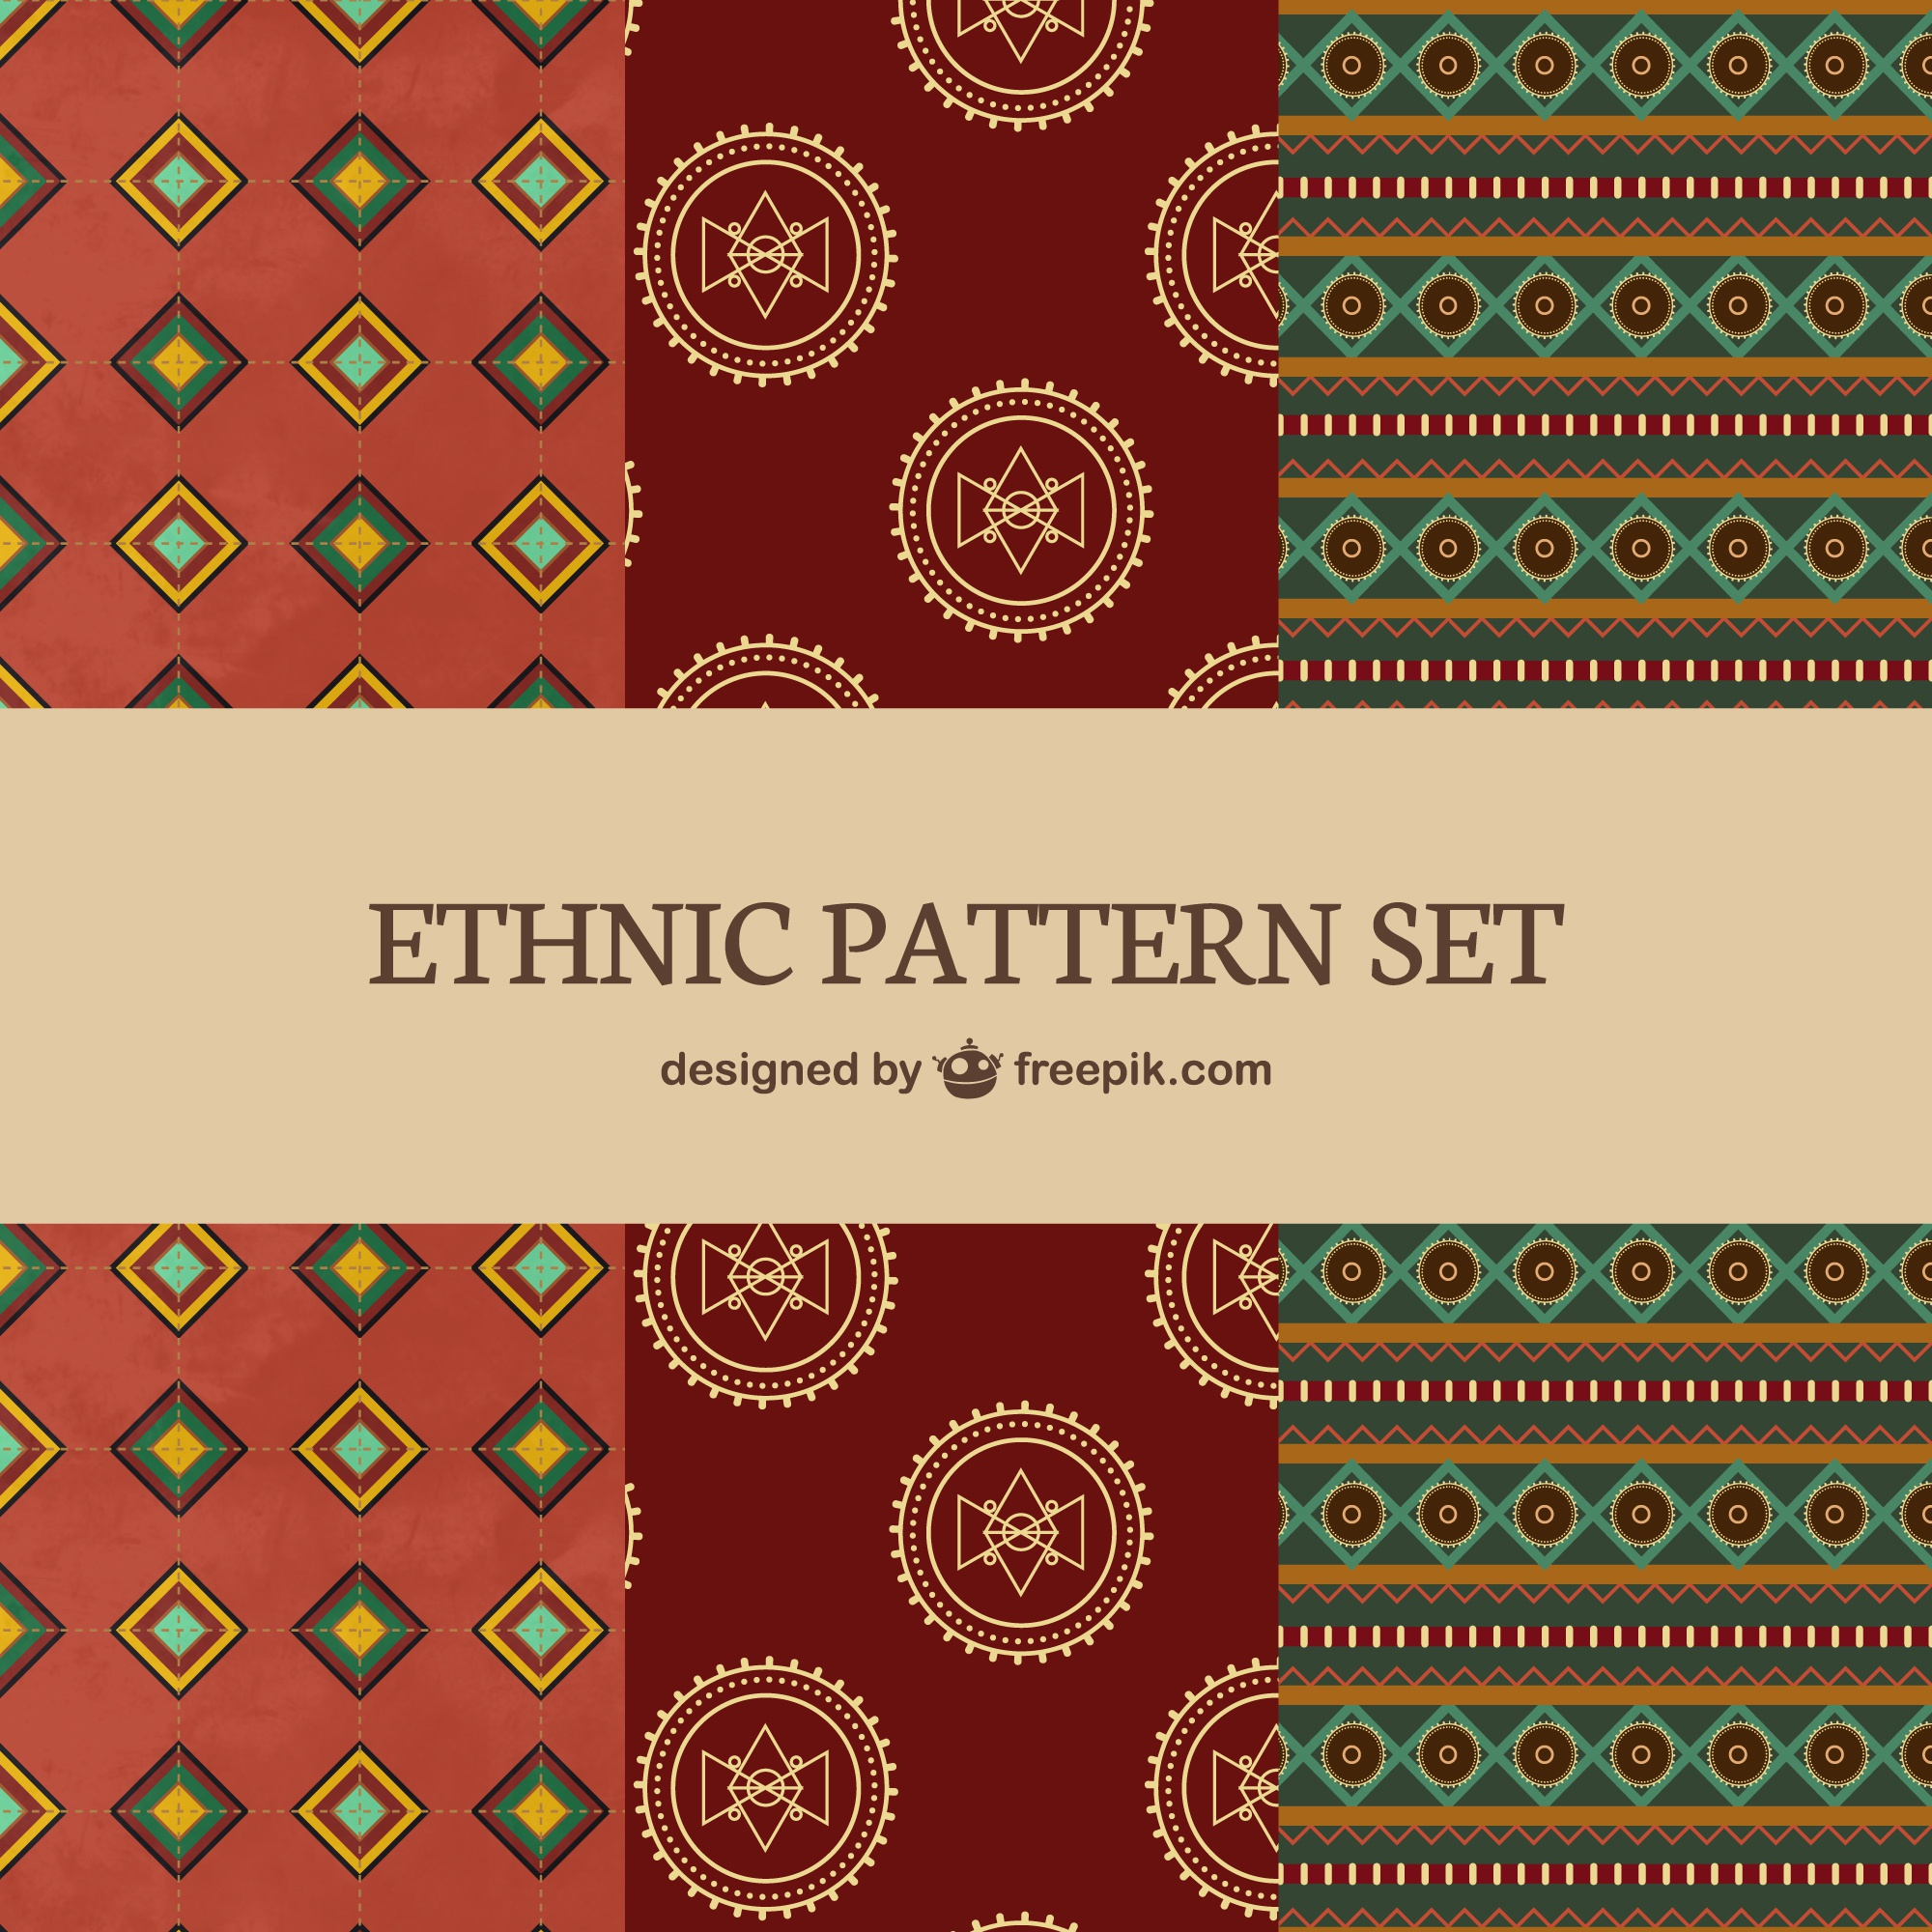 Ethnic patterns set